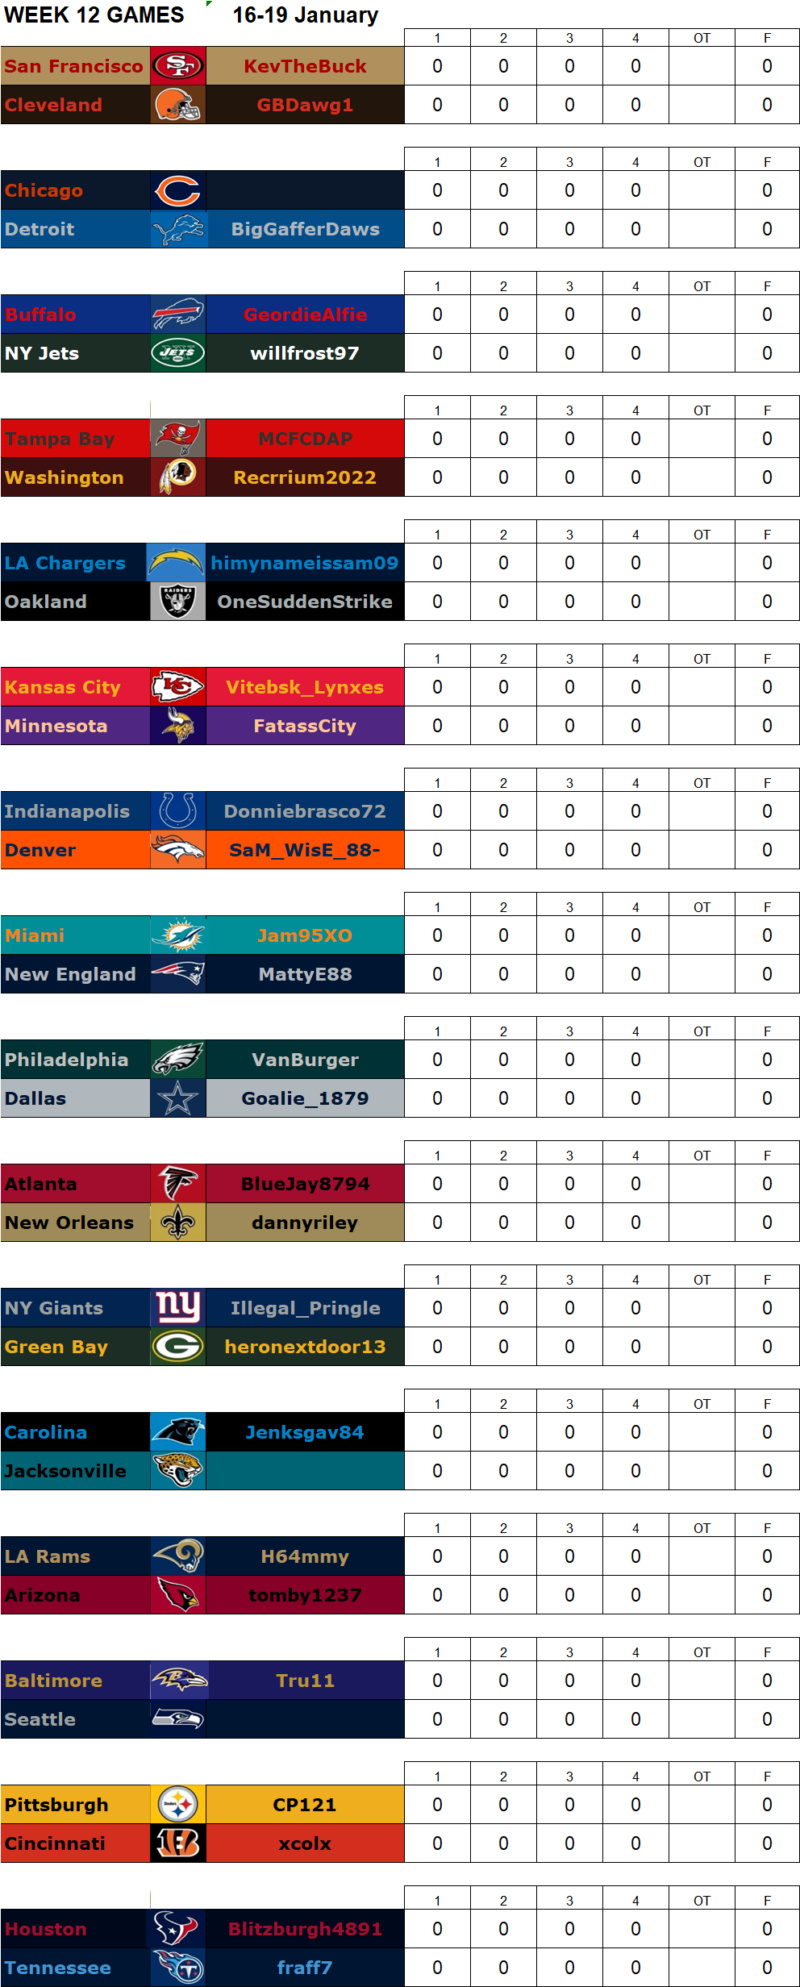 Week 12 Matchups, 16-19 January **Amended** W12g14